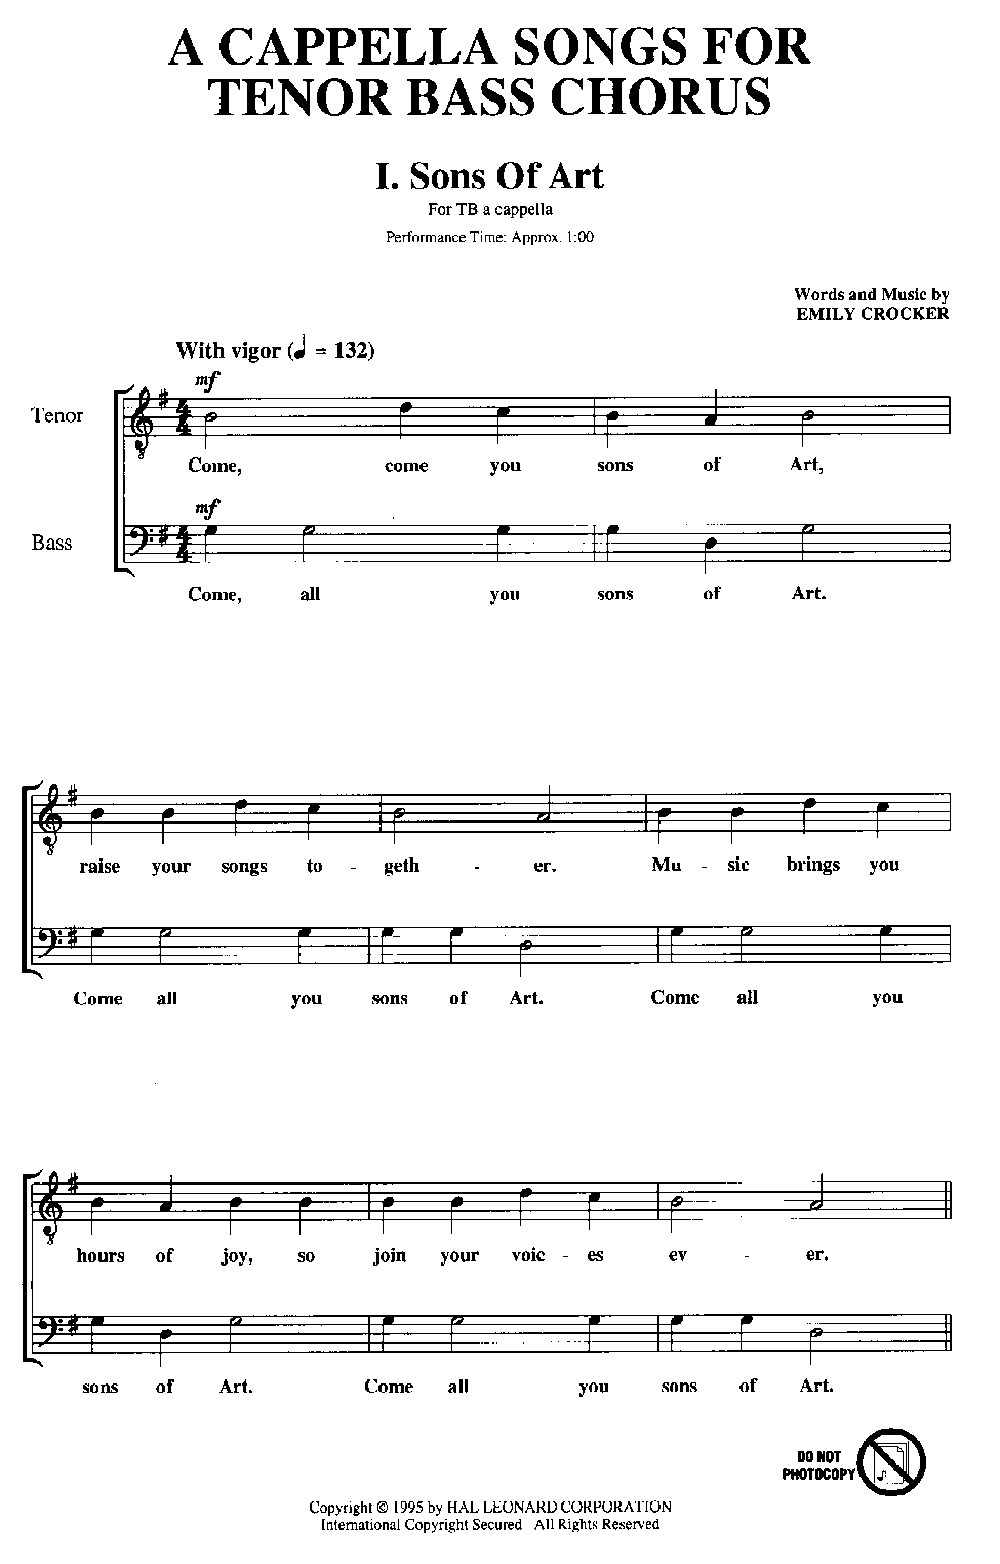 A Cappella Songs for Tenor-Bass Chorus (TB B | J W  Pepper